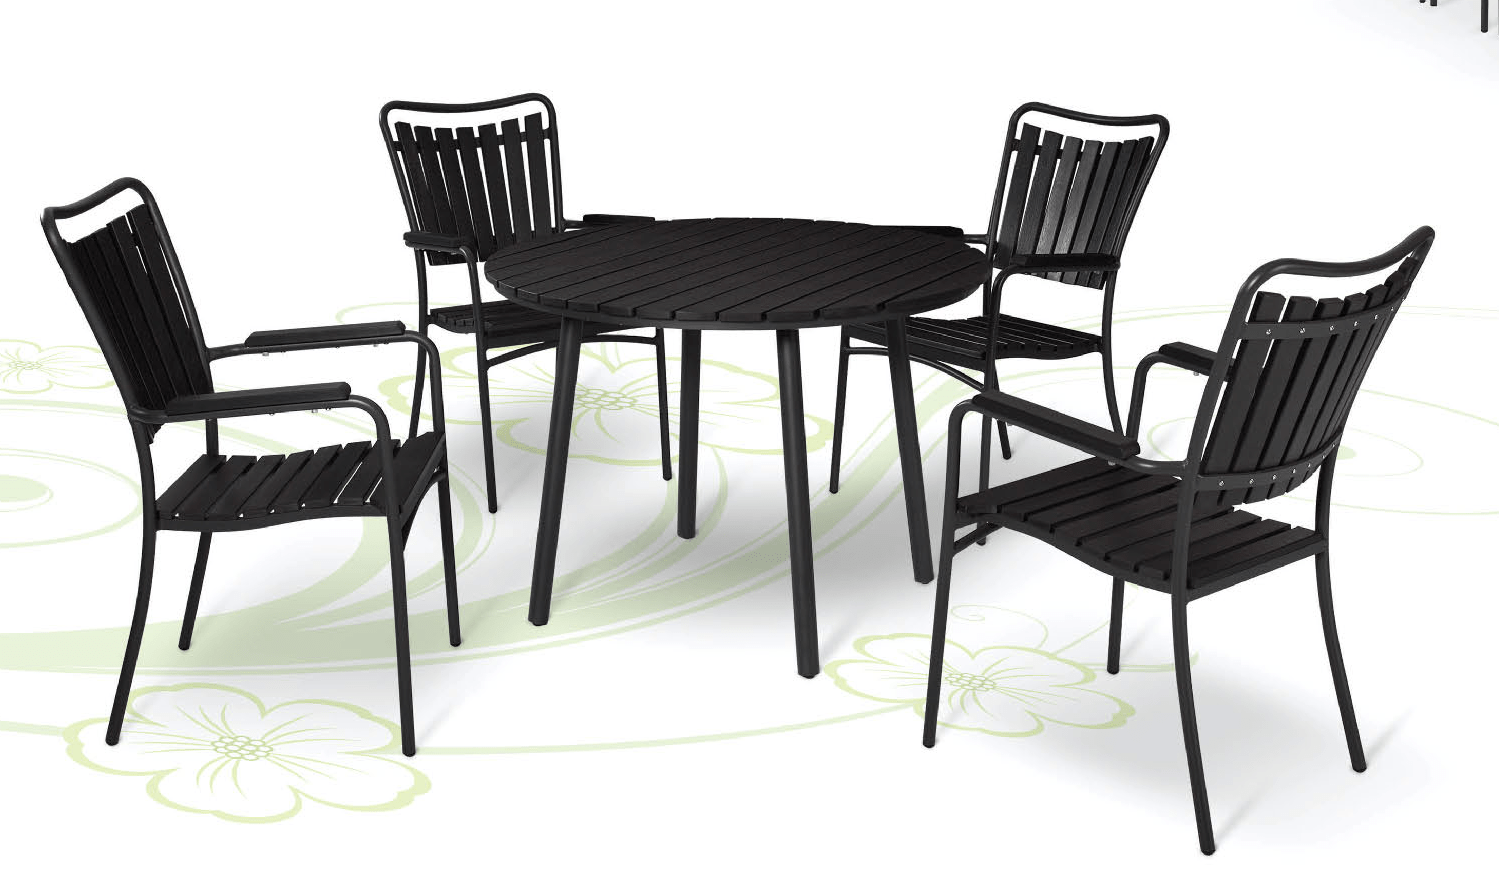 folding chair walmart air cushion png table and chairs transparent chairs.png images. | pluspng